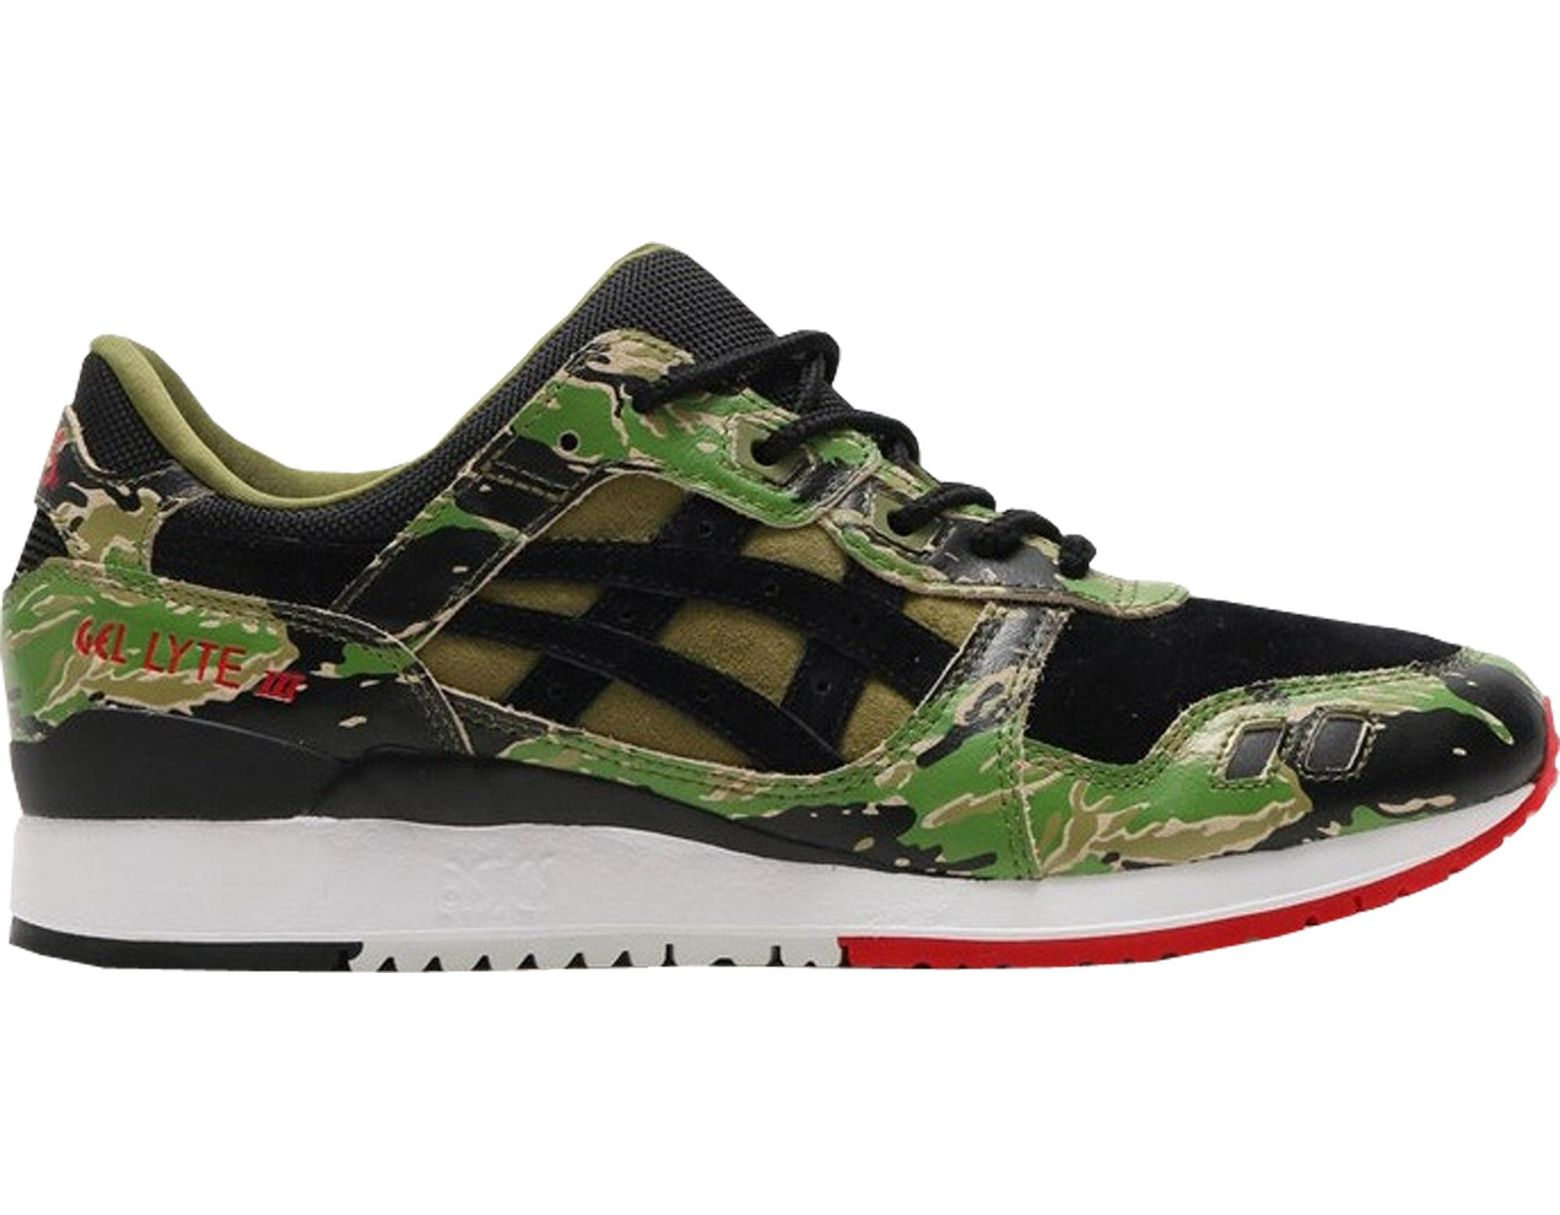 6e19d321 Asics Gel-lyte Iii Atmos Green Camo in Green for Men - Lyst